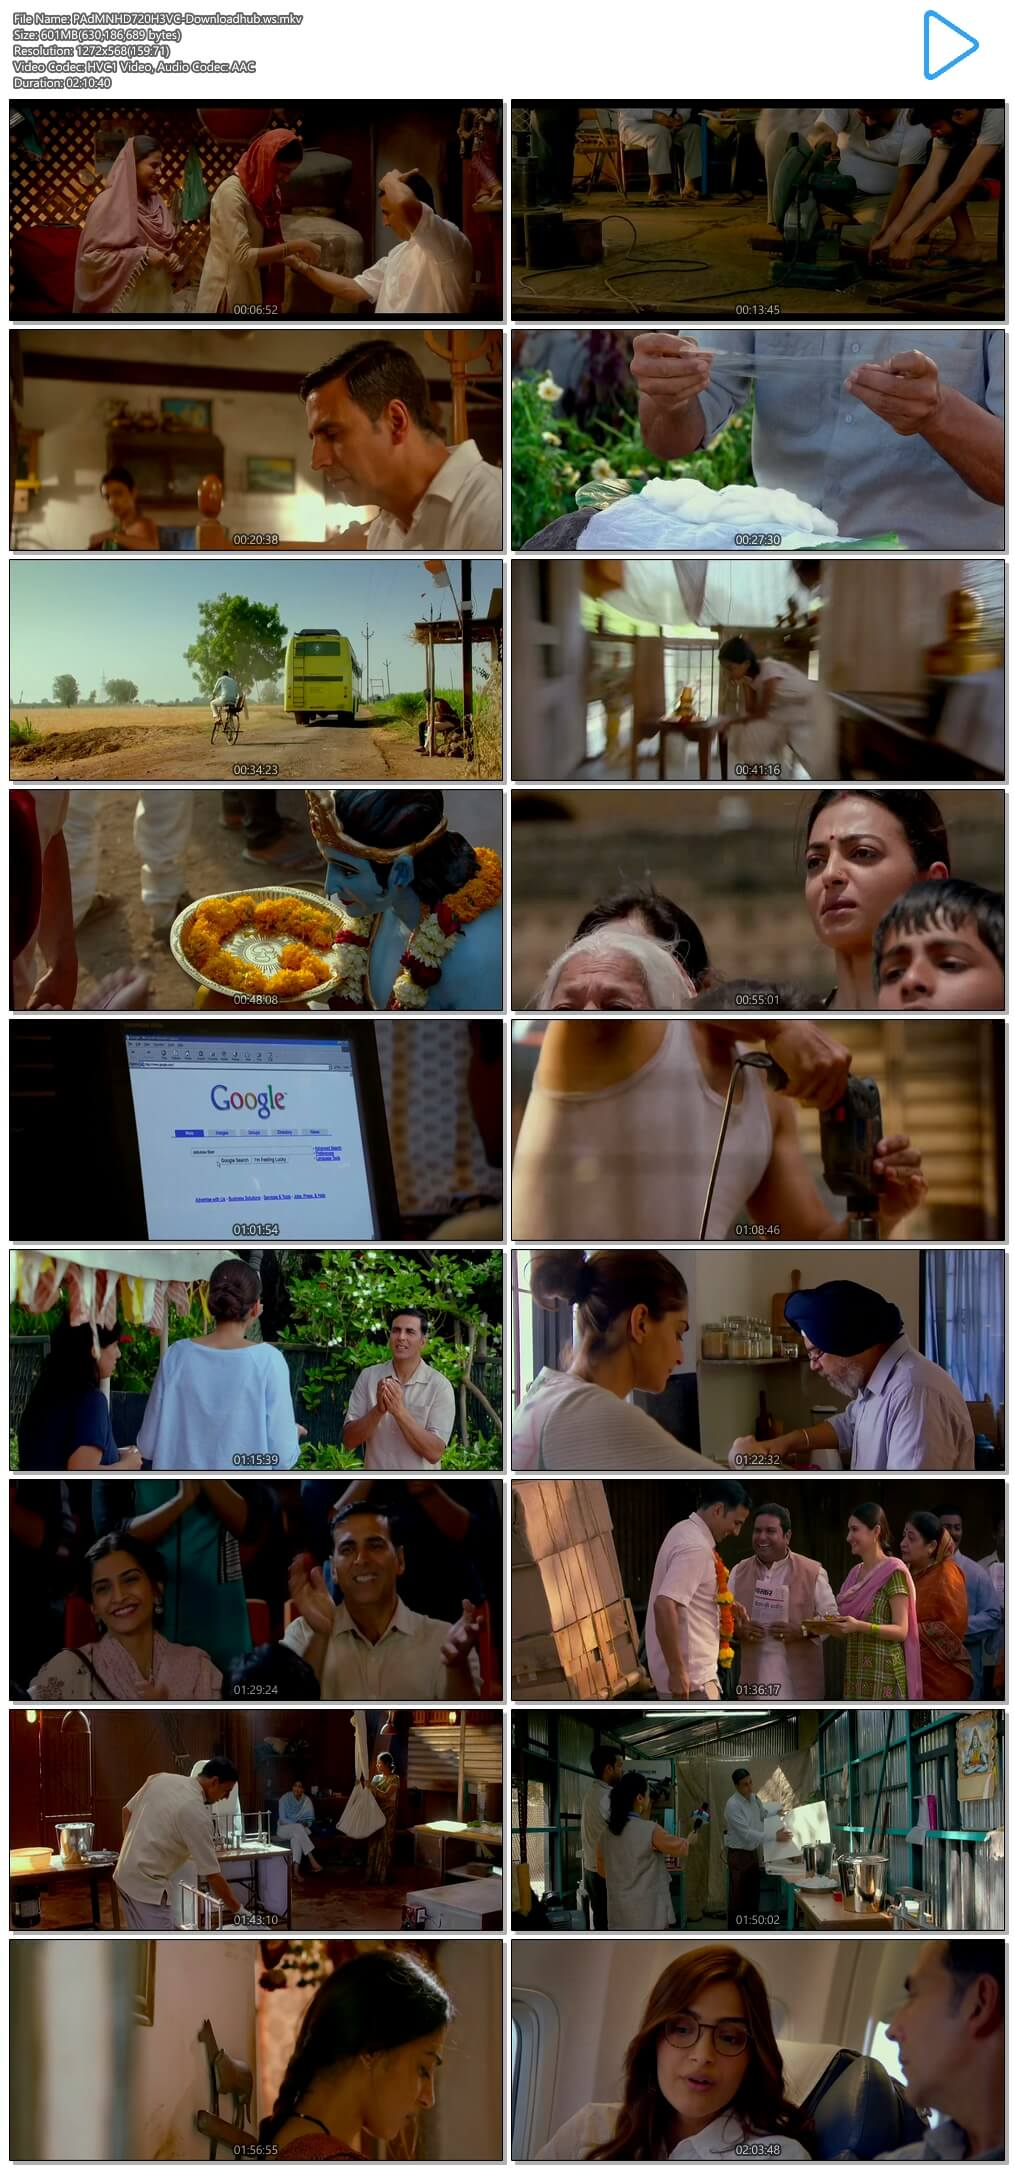 Padman 2018 Hindi 720p HEVC HDRip